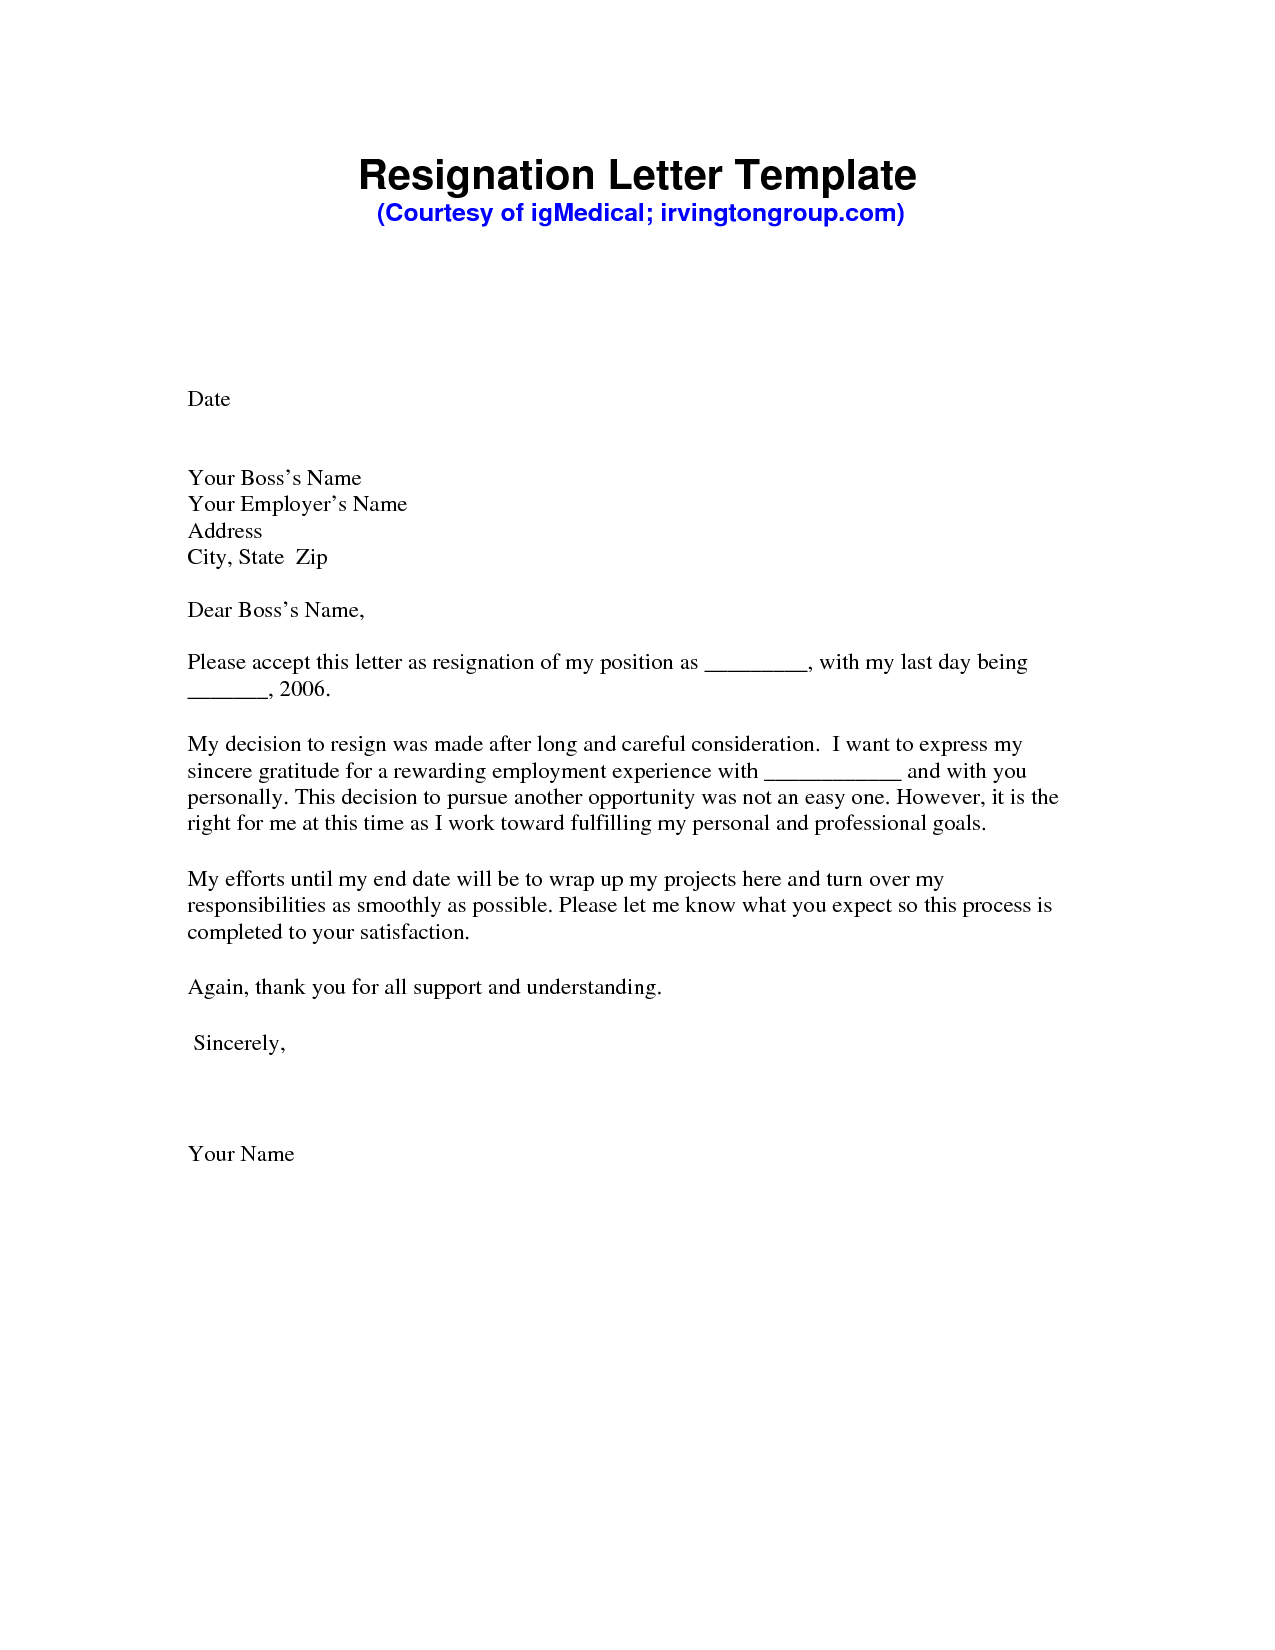 Assisted Living 30 Day Notice Letter Template - Resignation Letter Sample Pdf Resignation Letter